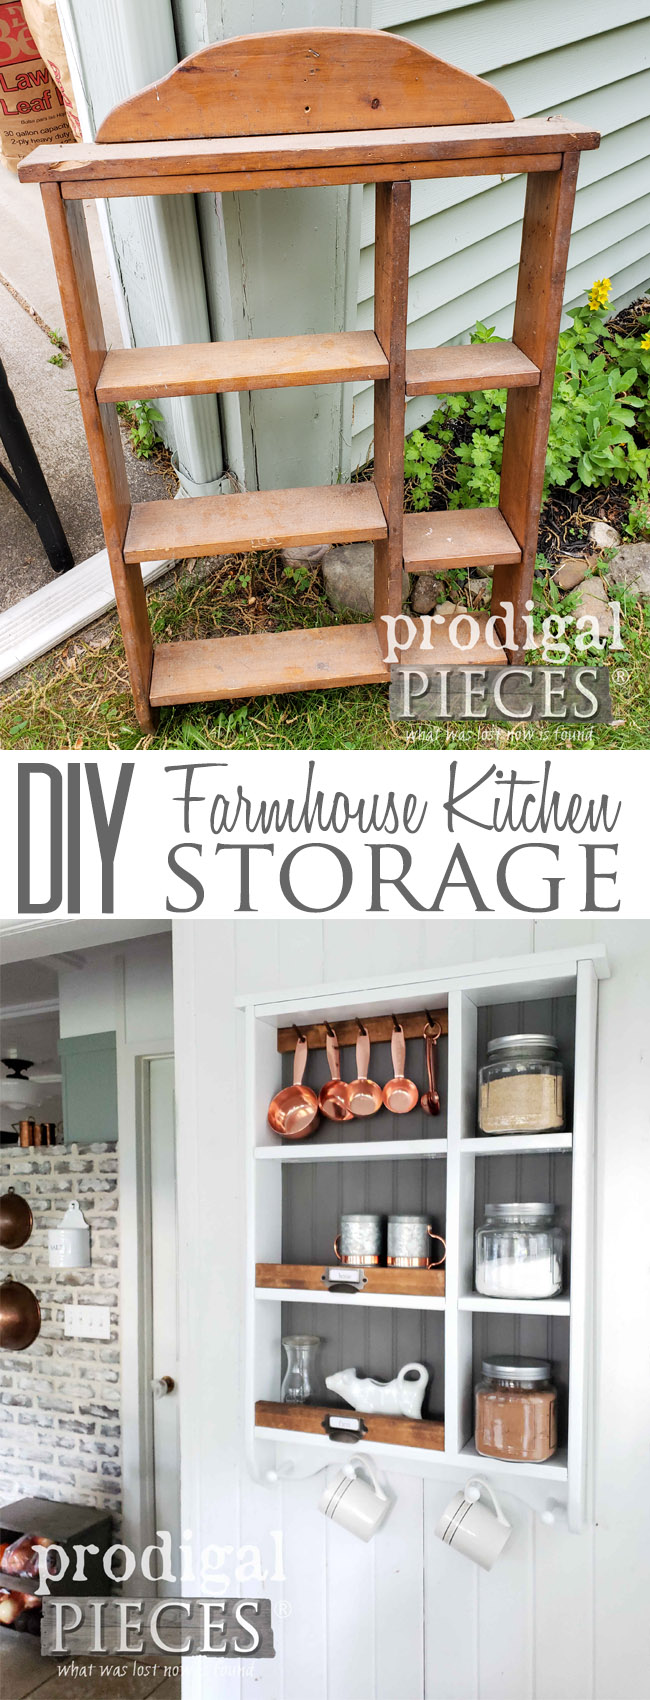 Wow! This tired looking shelf was transformed into fantastic farmhouse kitchen storage with a little elbow grease. See the DIY details at Prodigal Pieces | prodigalpieces.com #prodigalpieces #homedecor #farmhouse #diy #shopping #handmade